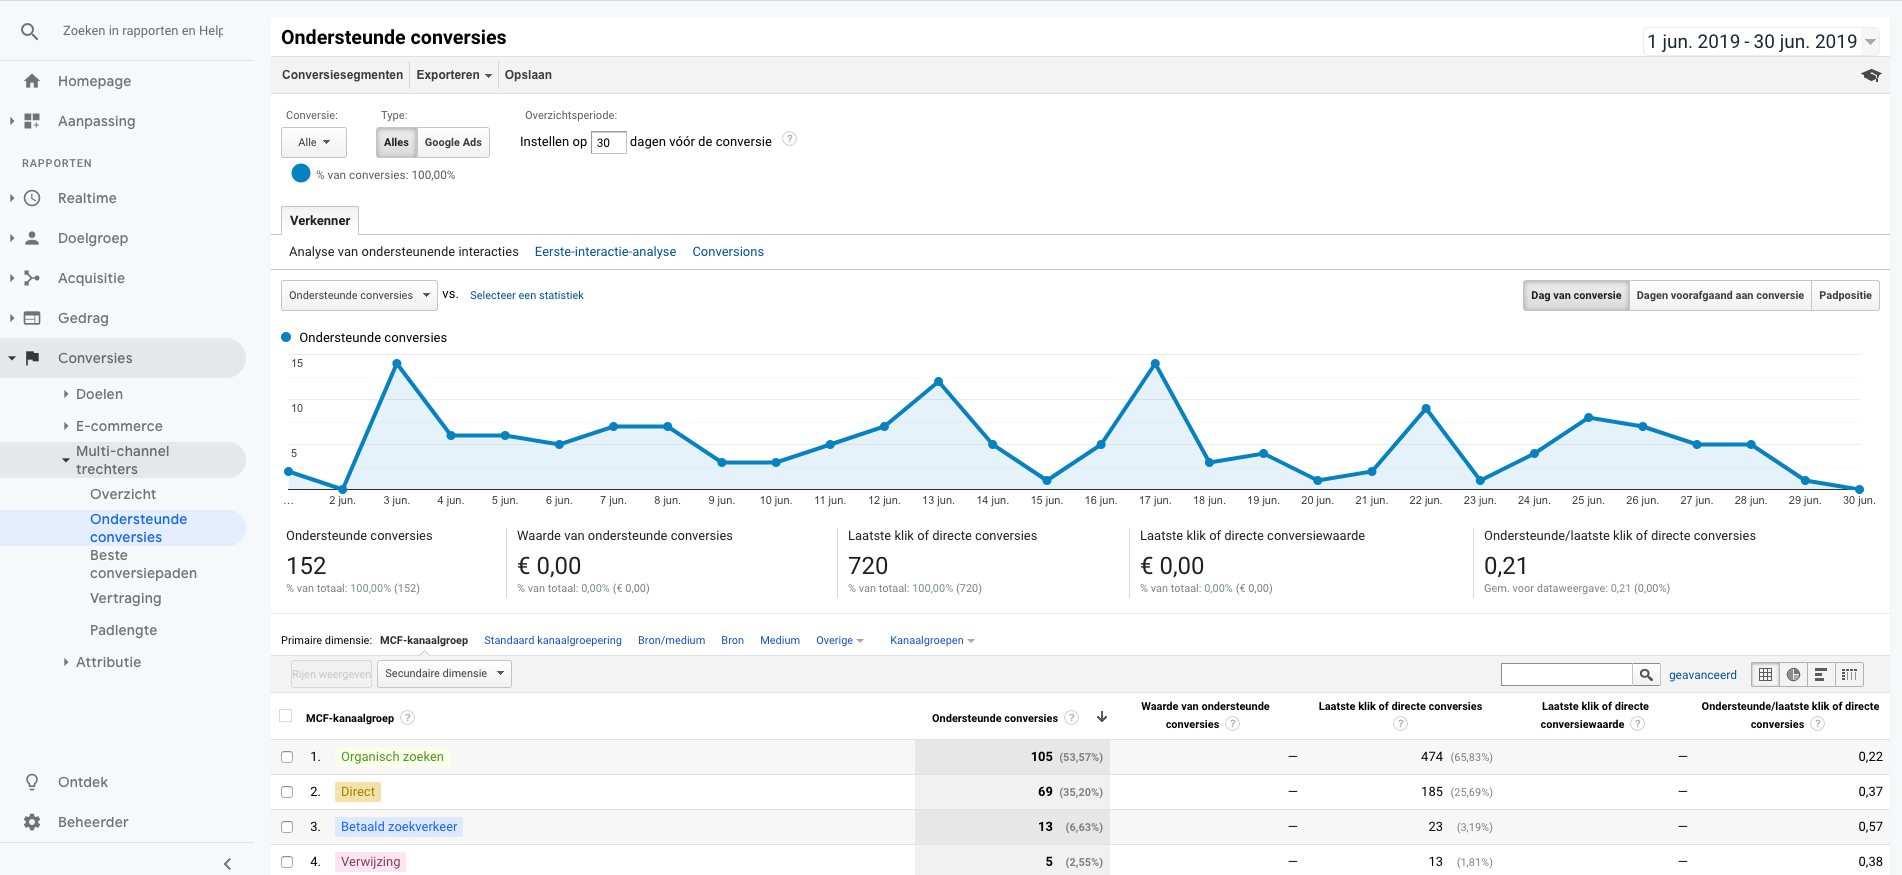 Uitleg over Multi-channel trechters in Google Analytics